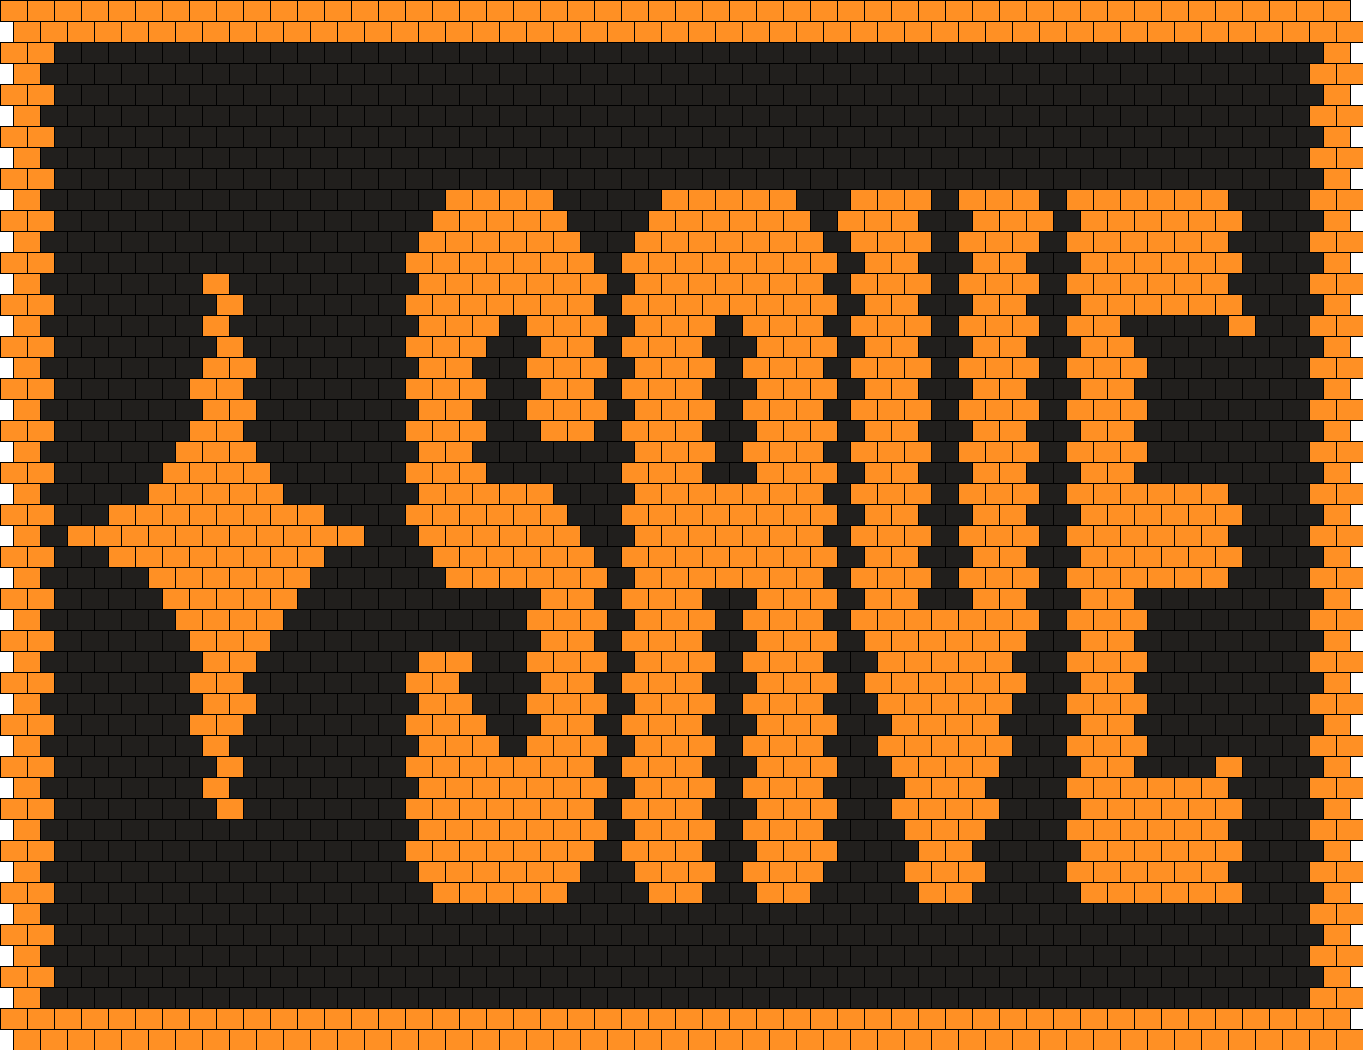 Undertale SAVE Button Bead Pattern